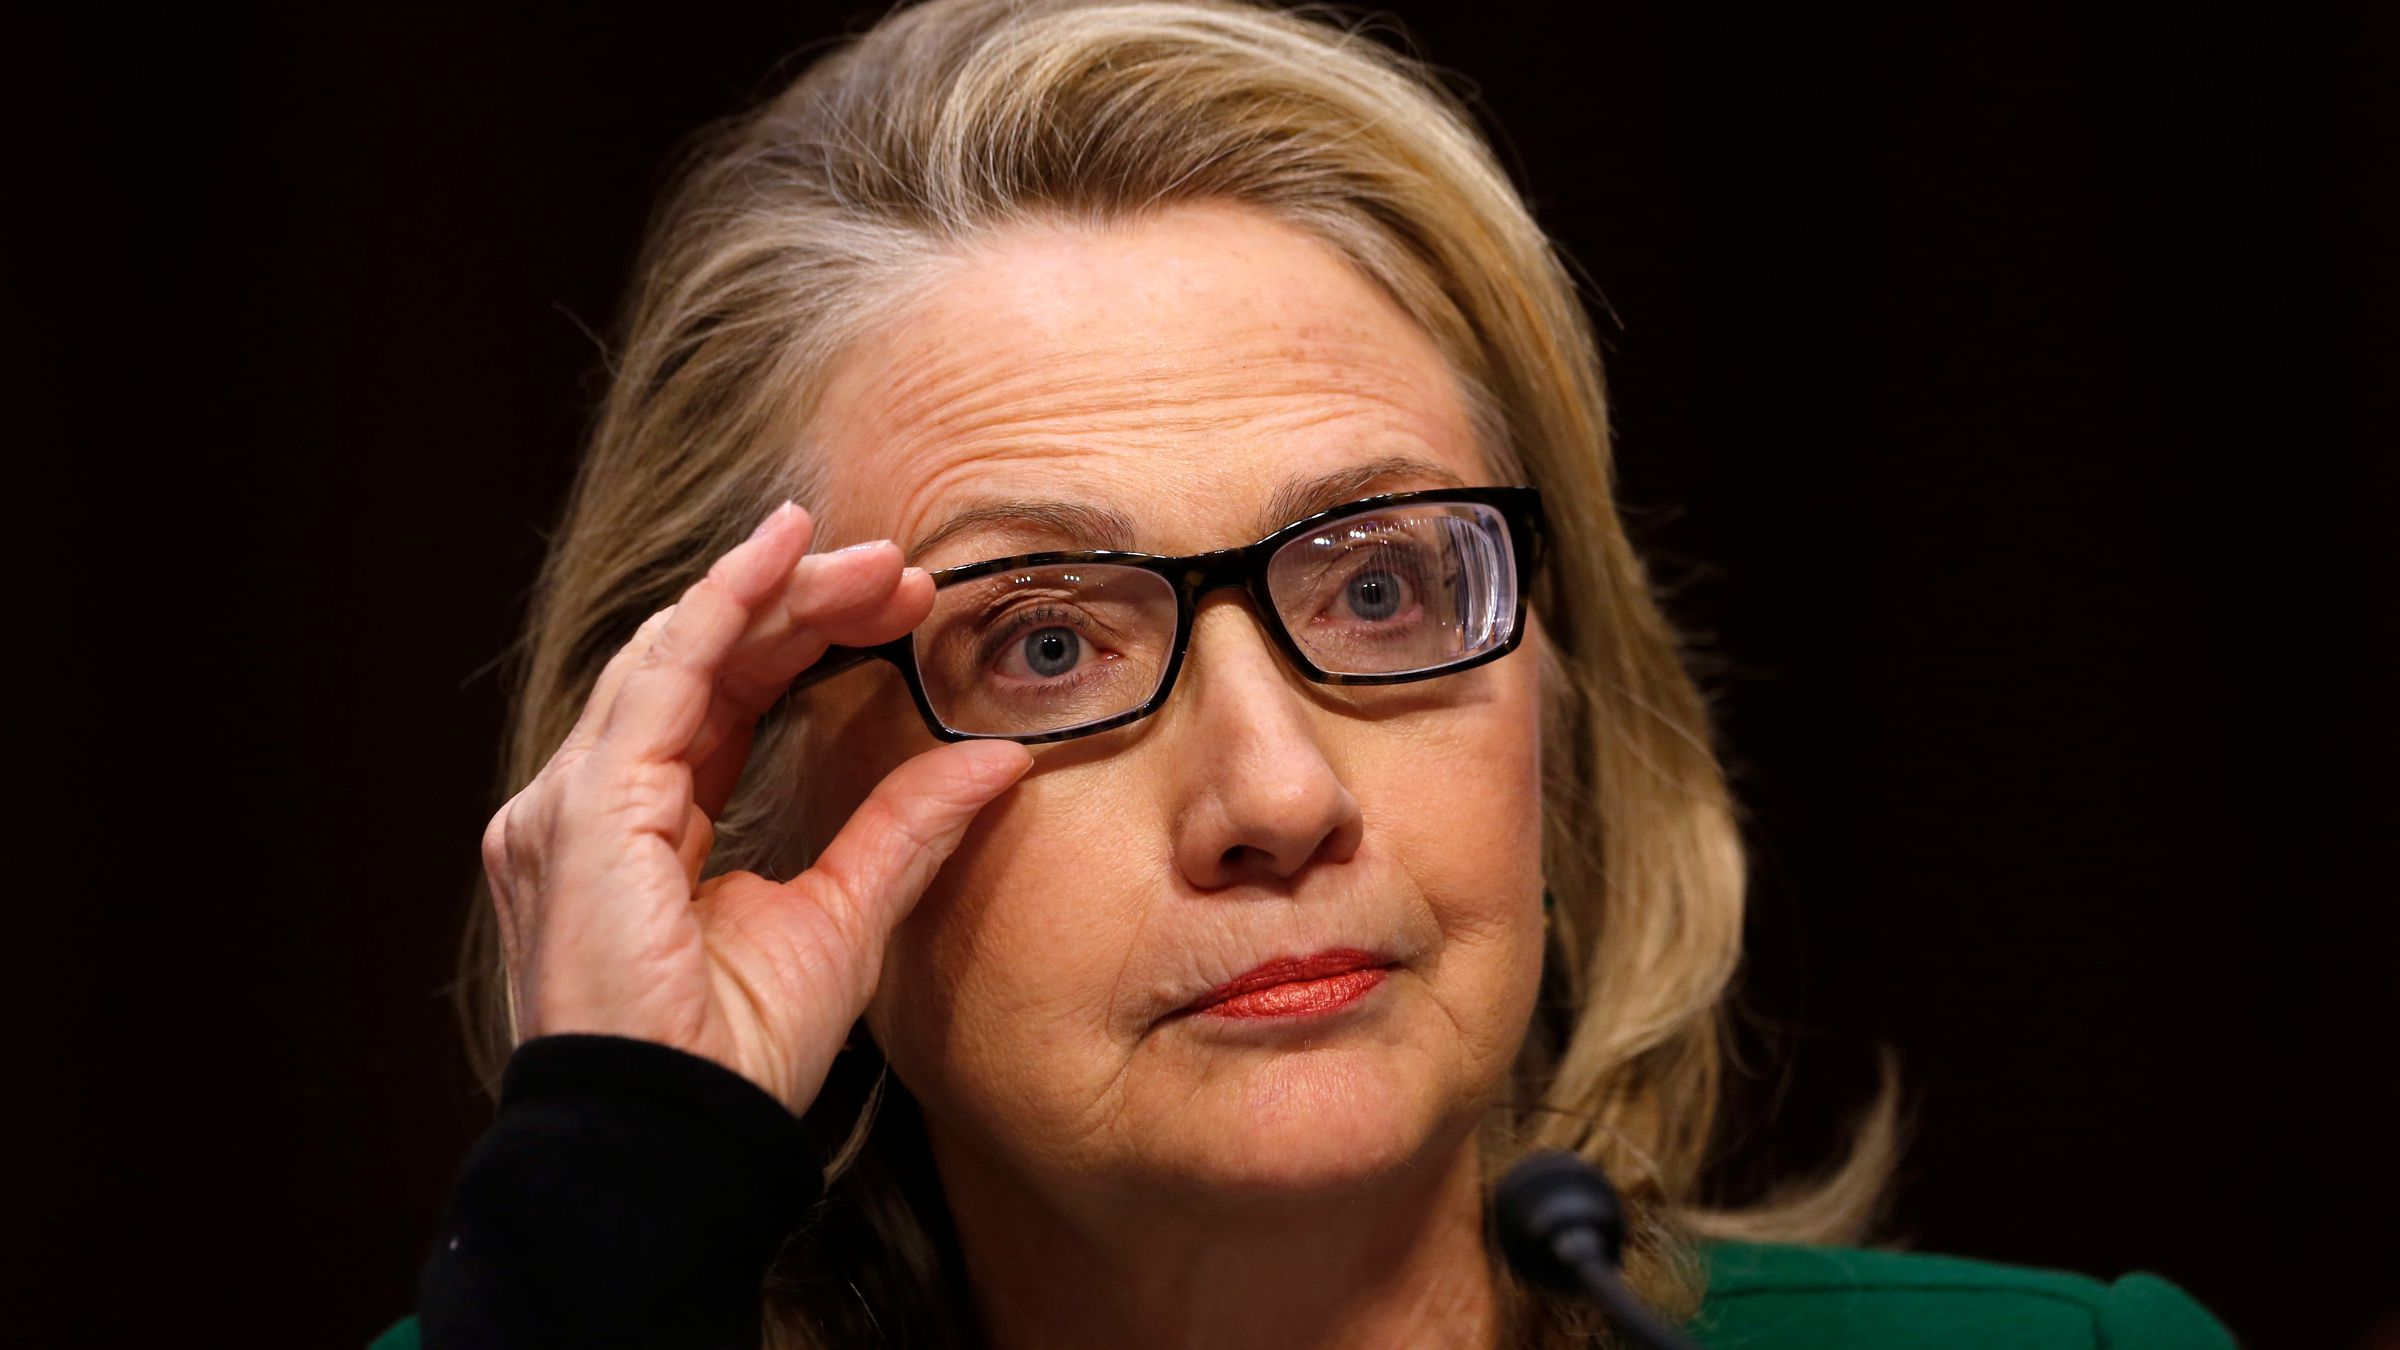 U.S.Secretary of State Hillary Clinton pauses while testifying on the September attacks on U.S. diplomatic sites in Benghazi, Libya, during a Senate Foreign Relations Committee hearing on Capitol Hill in Washington January 23, 2013.